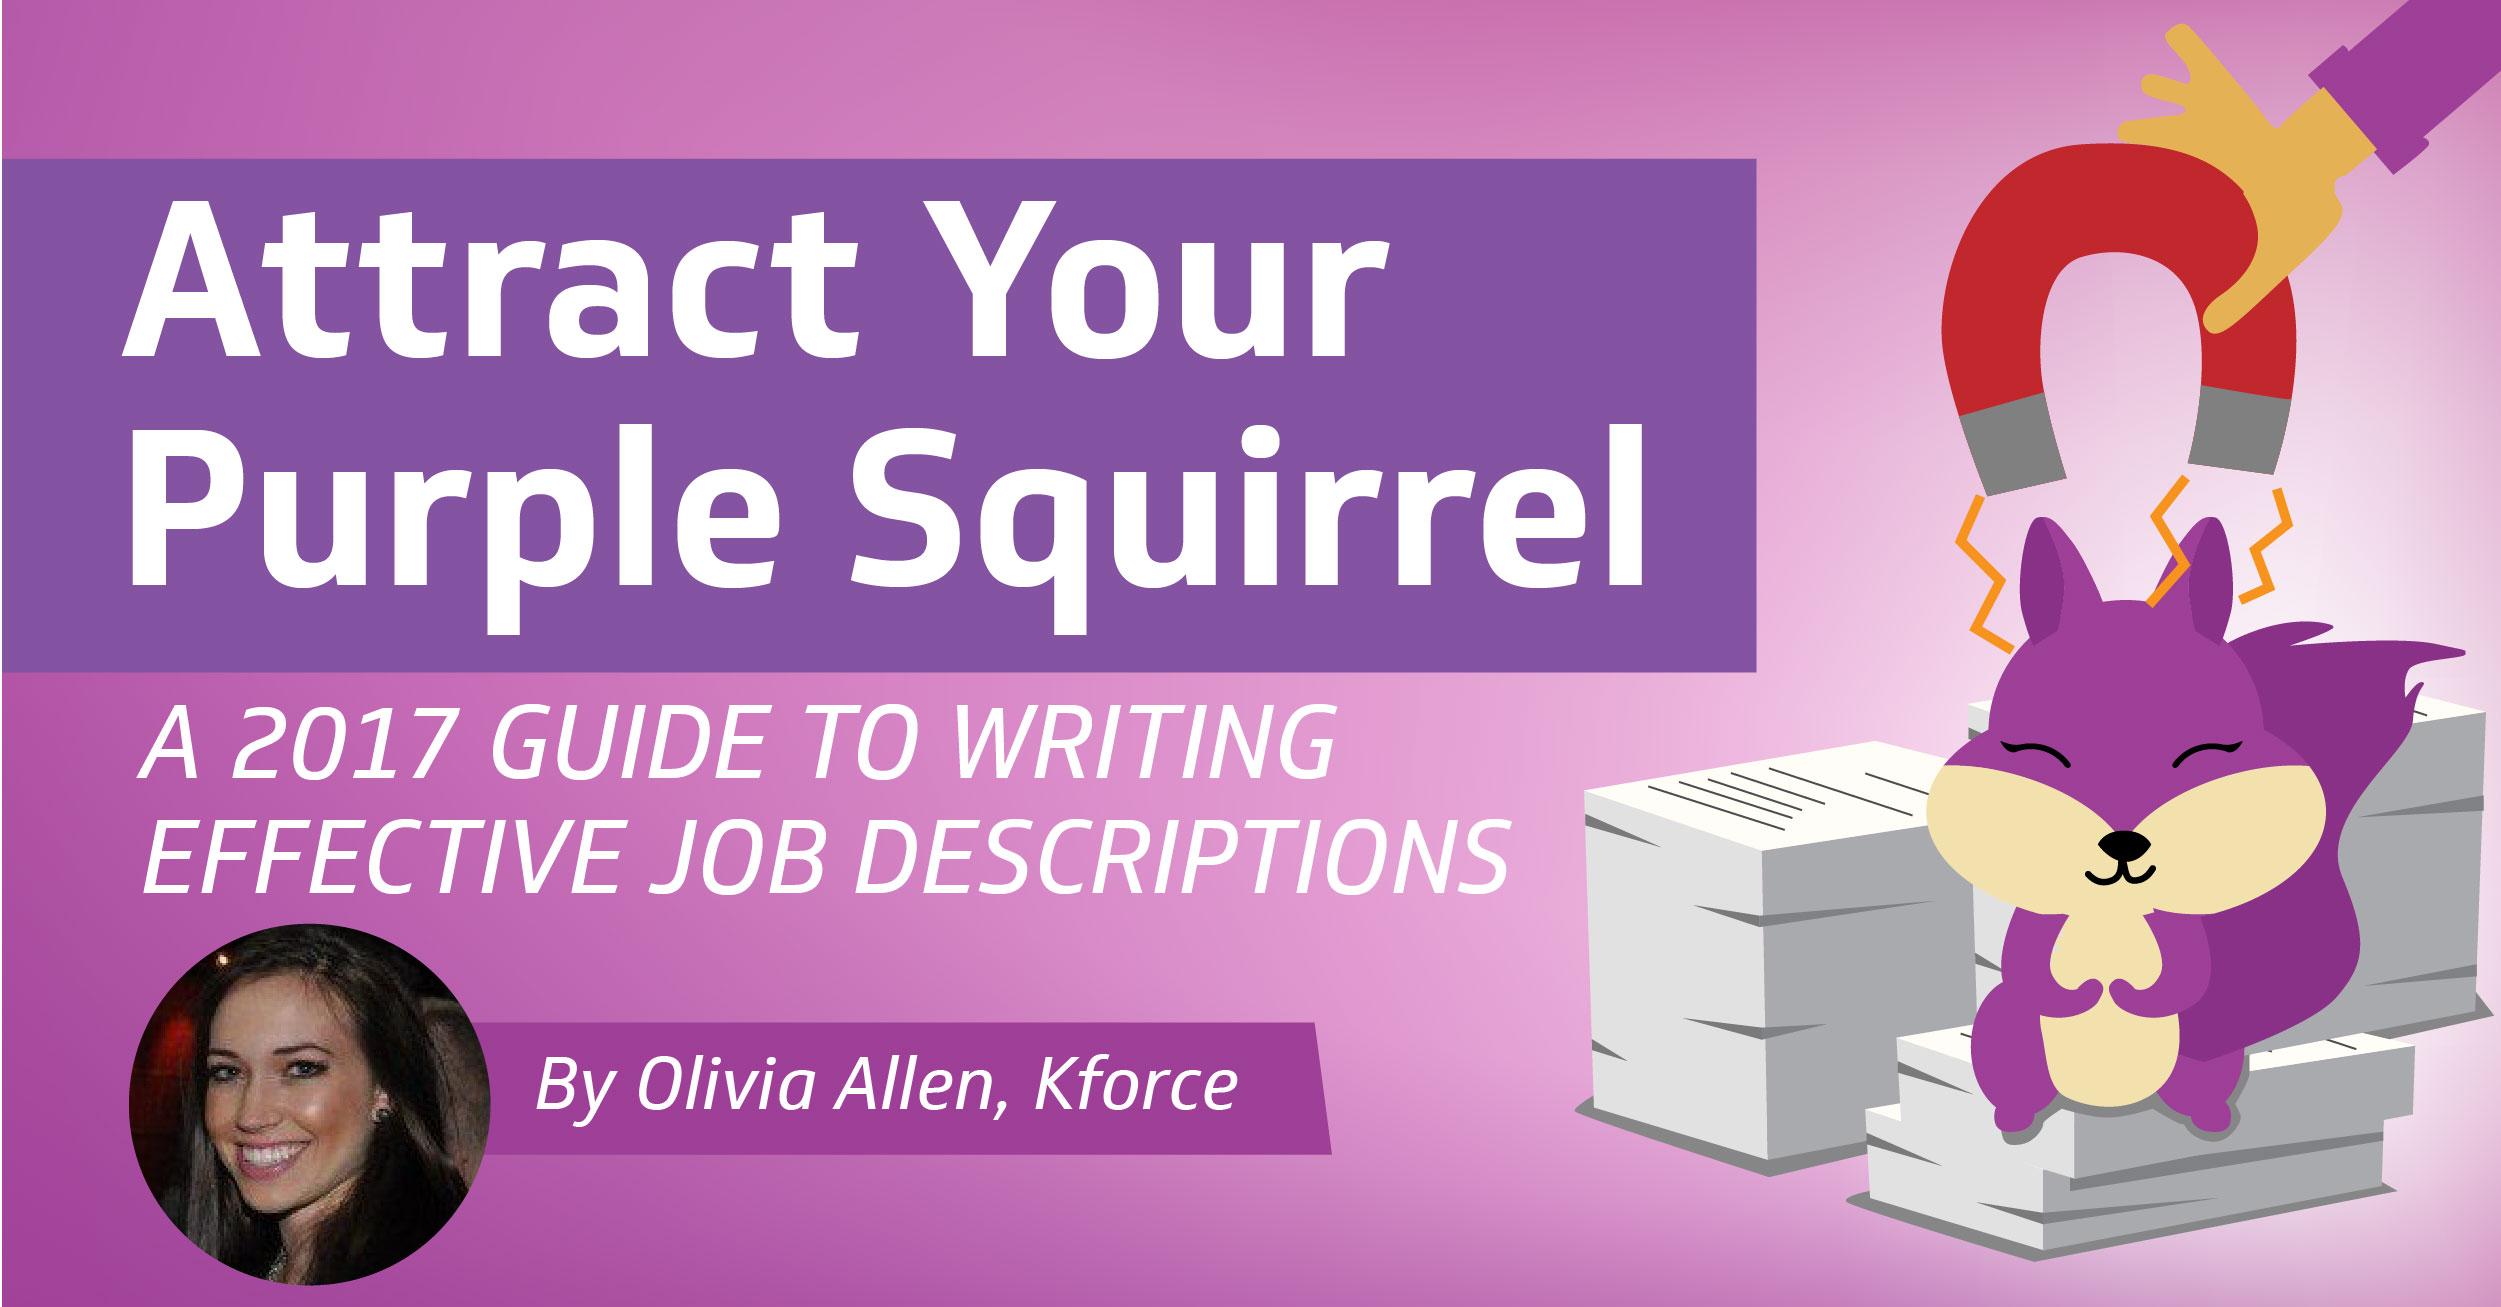 Write effective job descriptions & attract talent